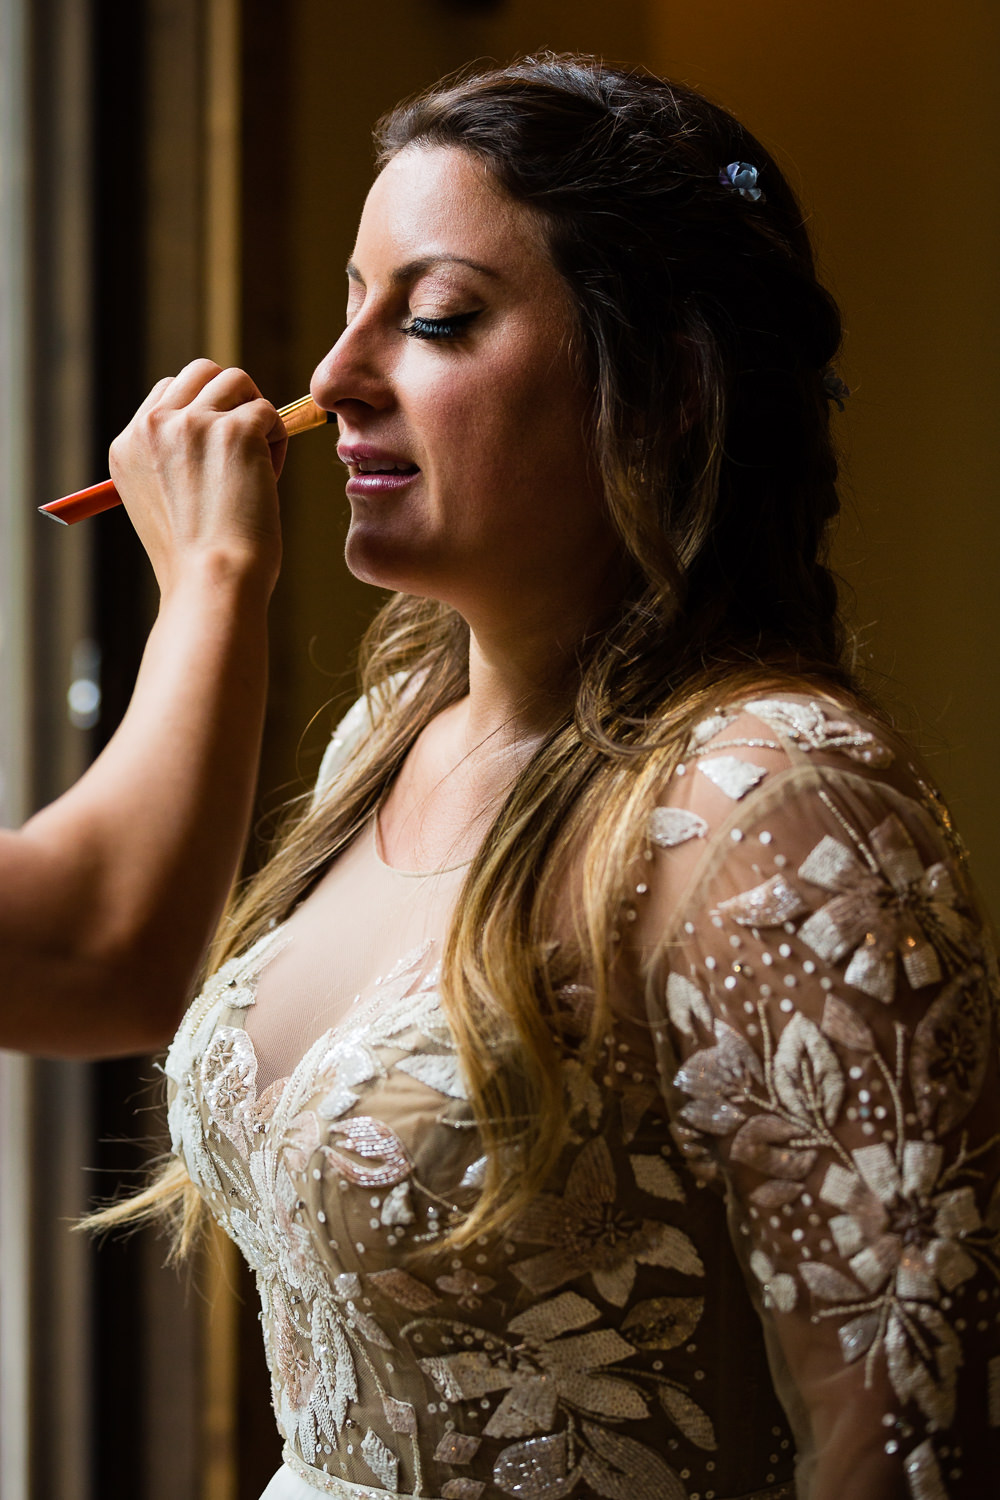 bozeman-hart-ranch-wedding-bride-does-final-makeup-check.jpg